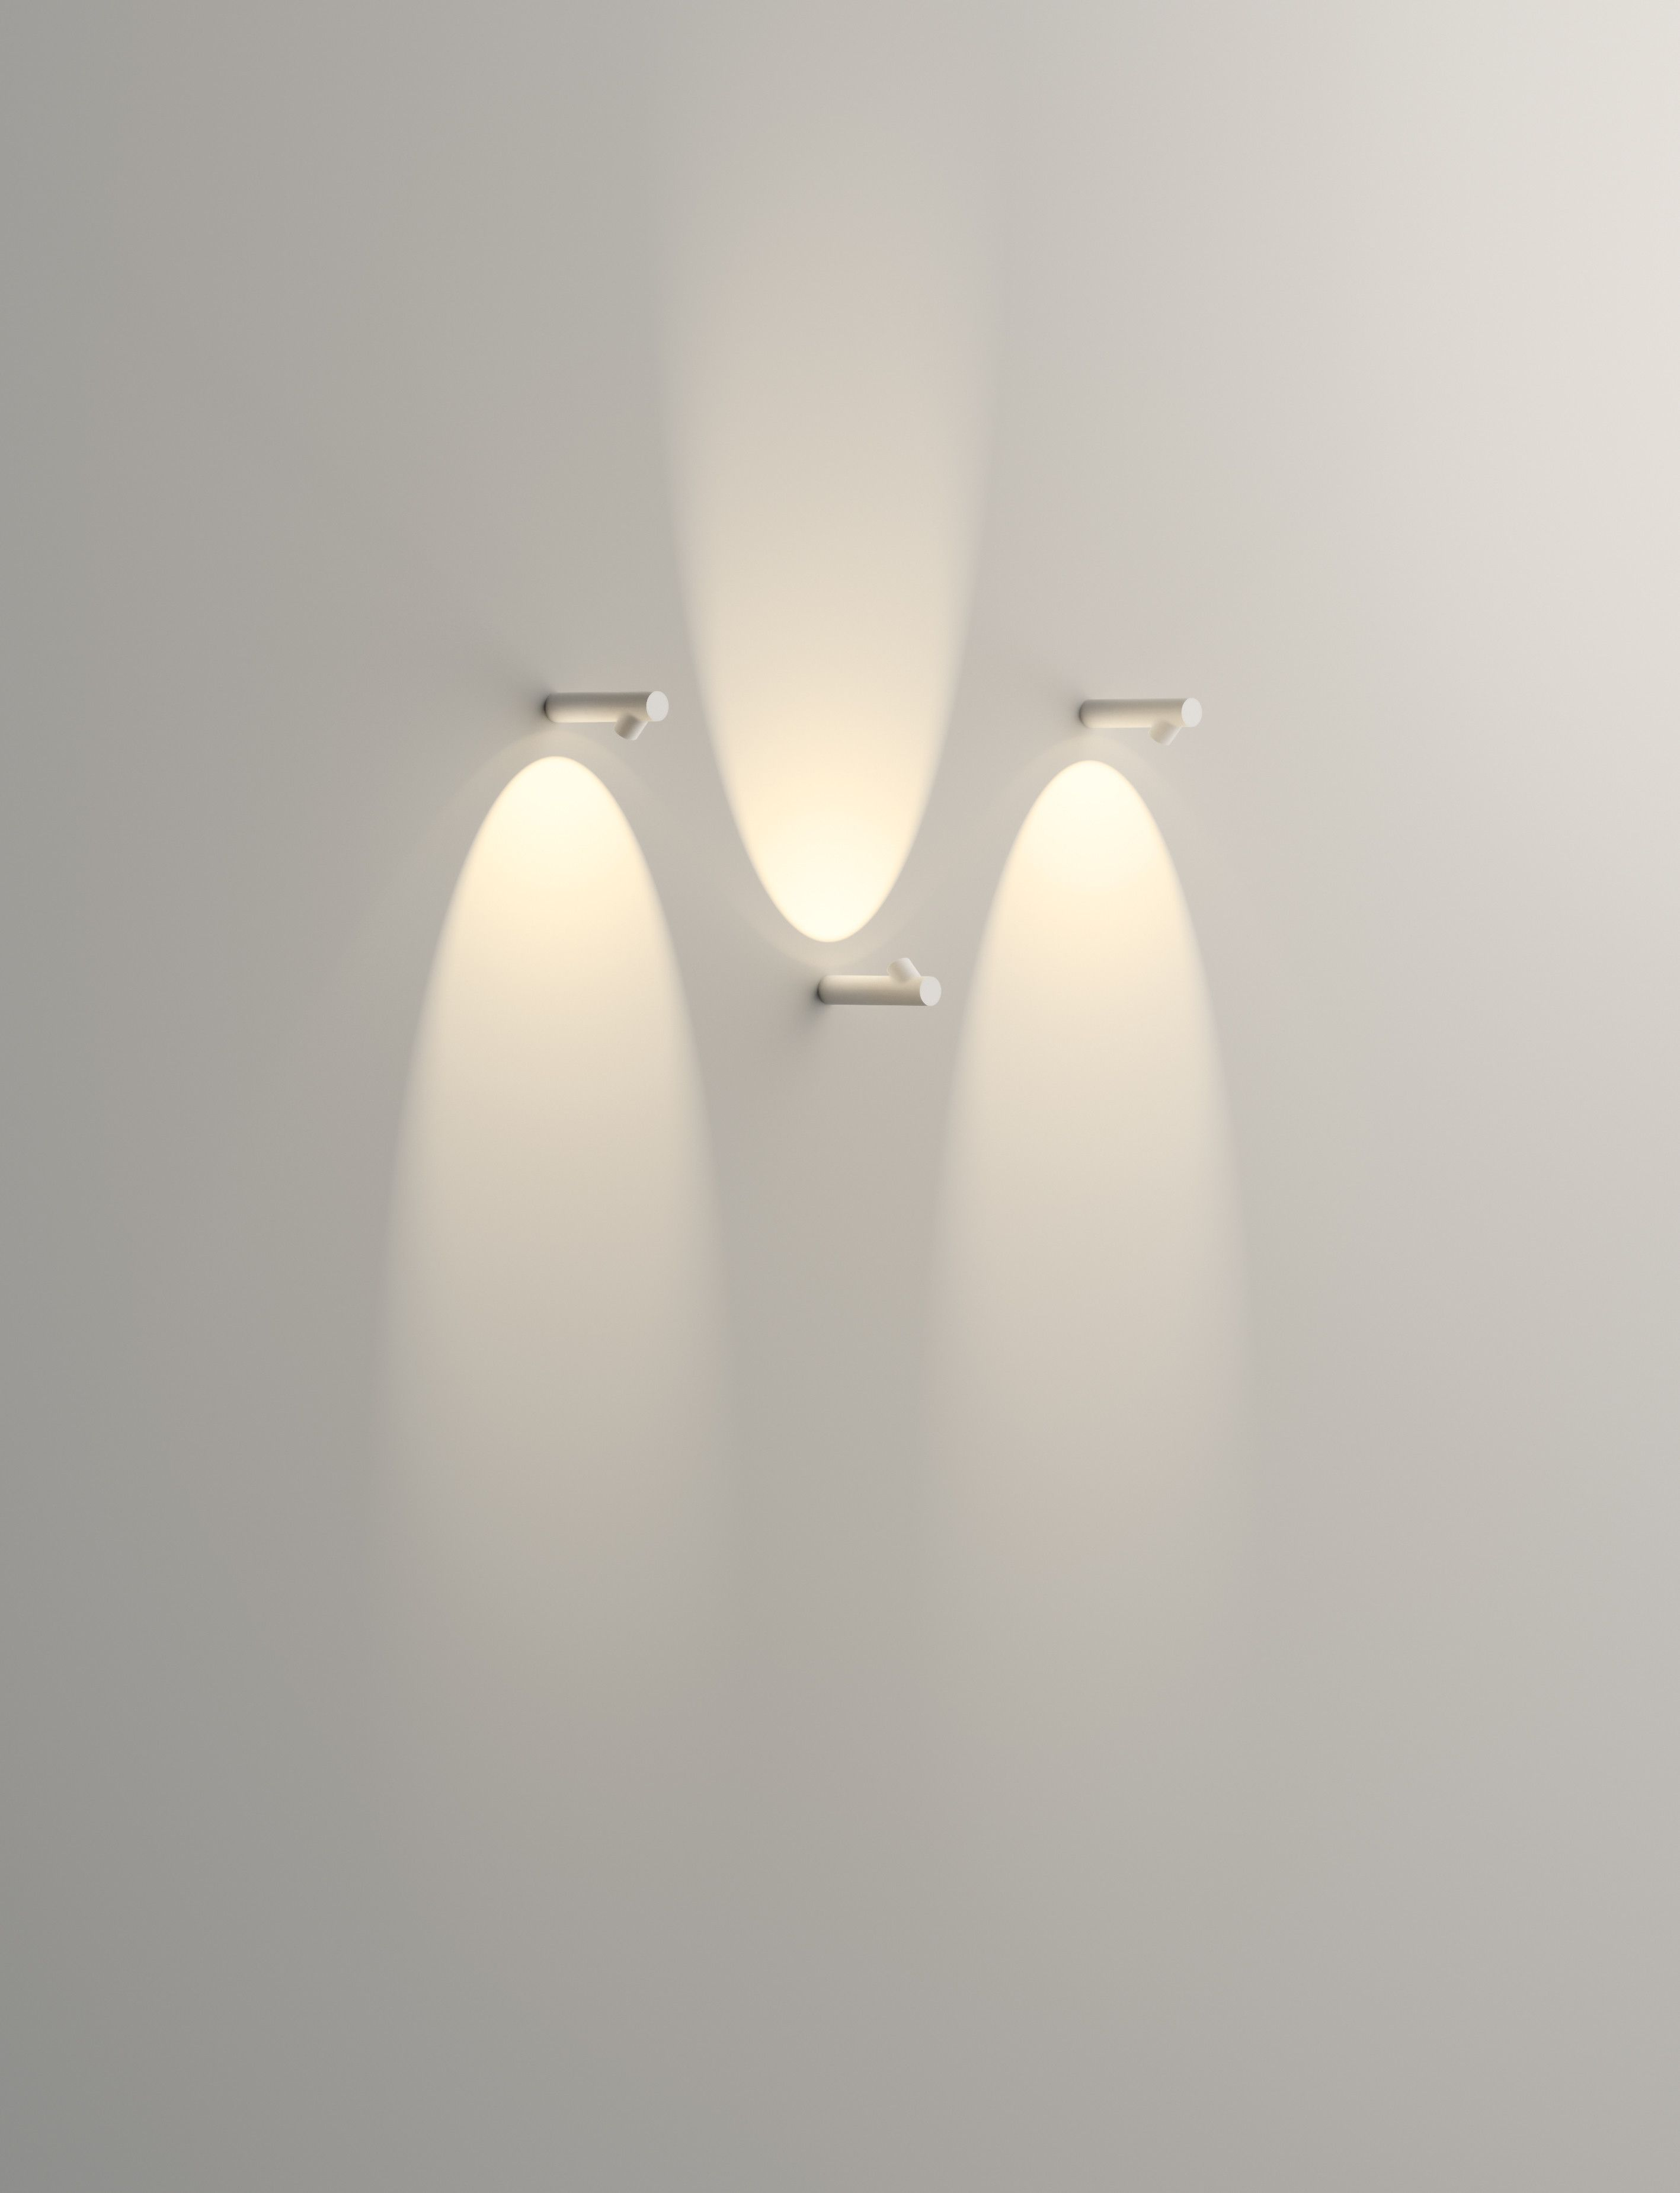 Vibia Bamboo 4820 Wall Lamps At Outdoor Lights Online Shop 1001lights Wall Lamp Wall Lamps Diy Outdoor Wall Lighting